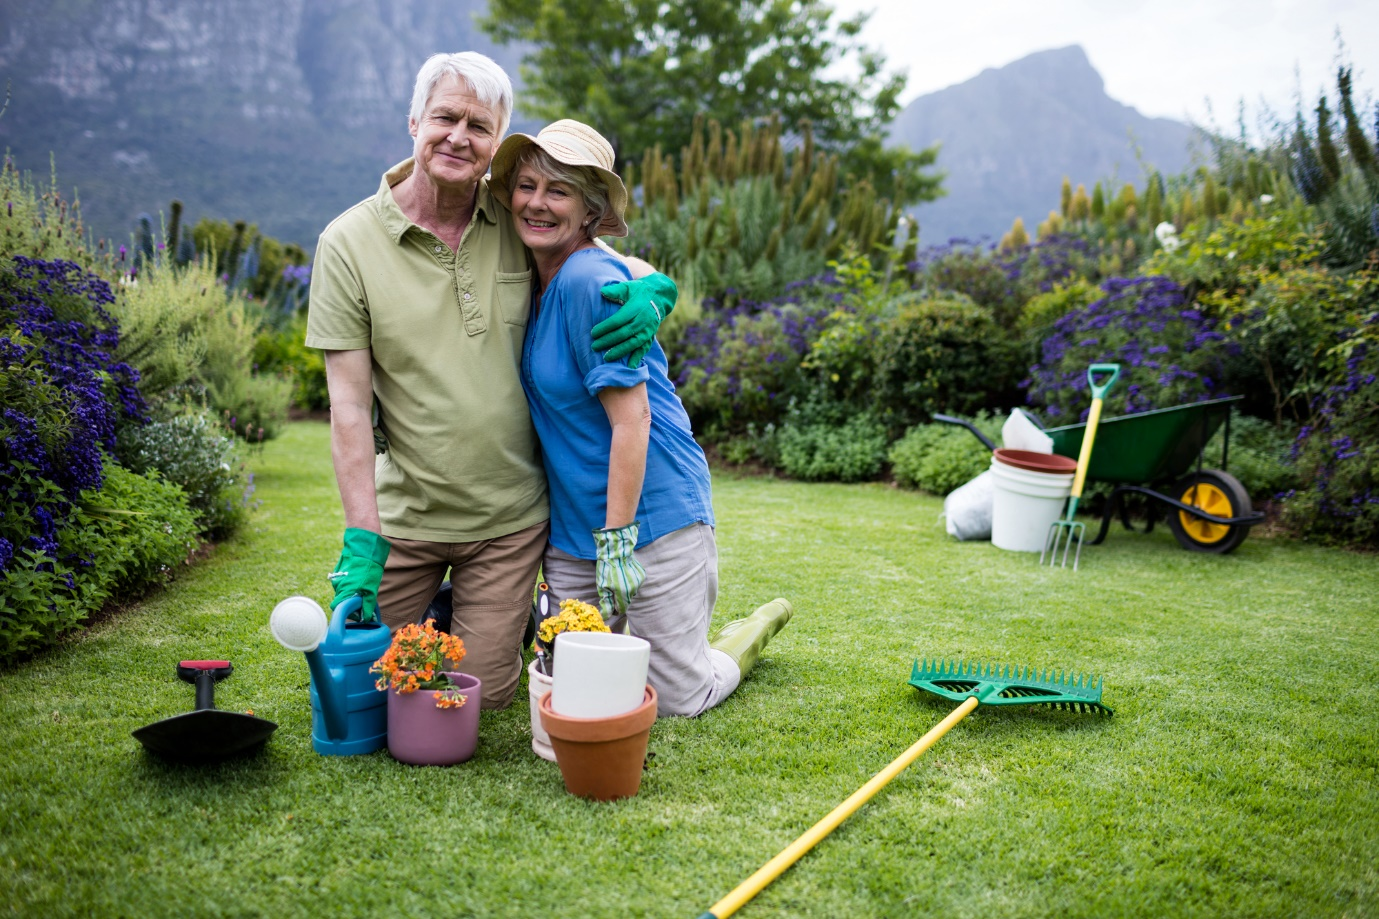 Lawn maintenance tips for seniors that requires little work